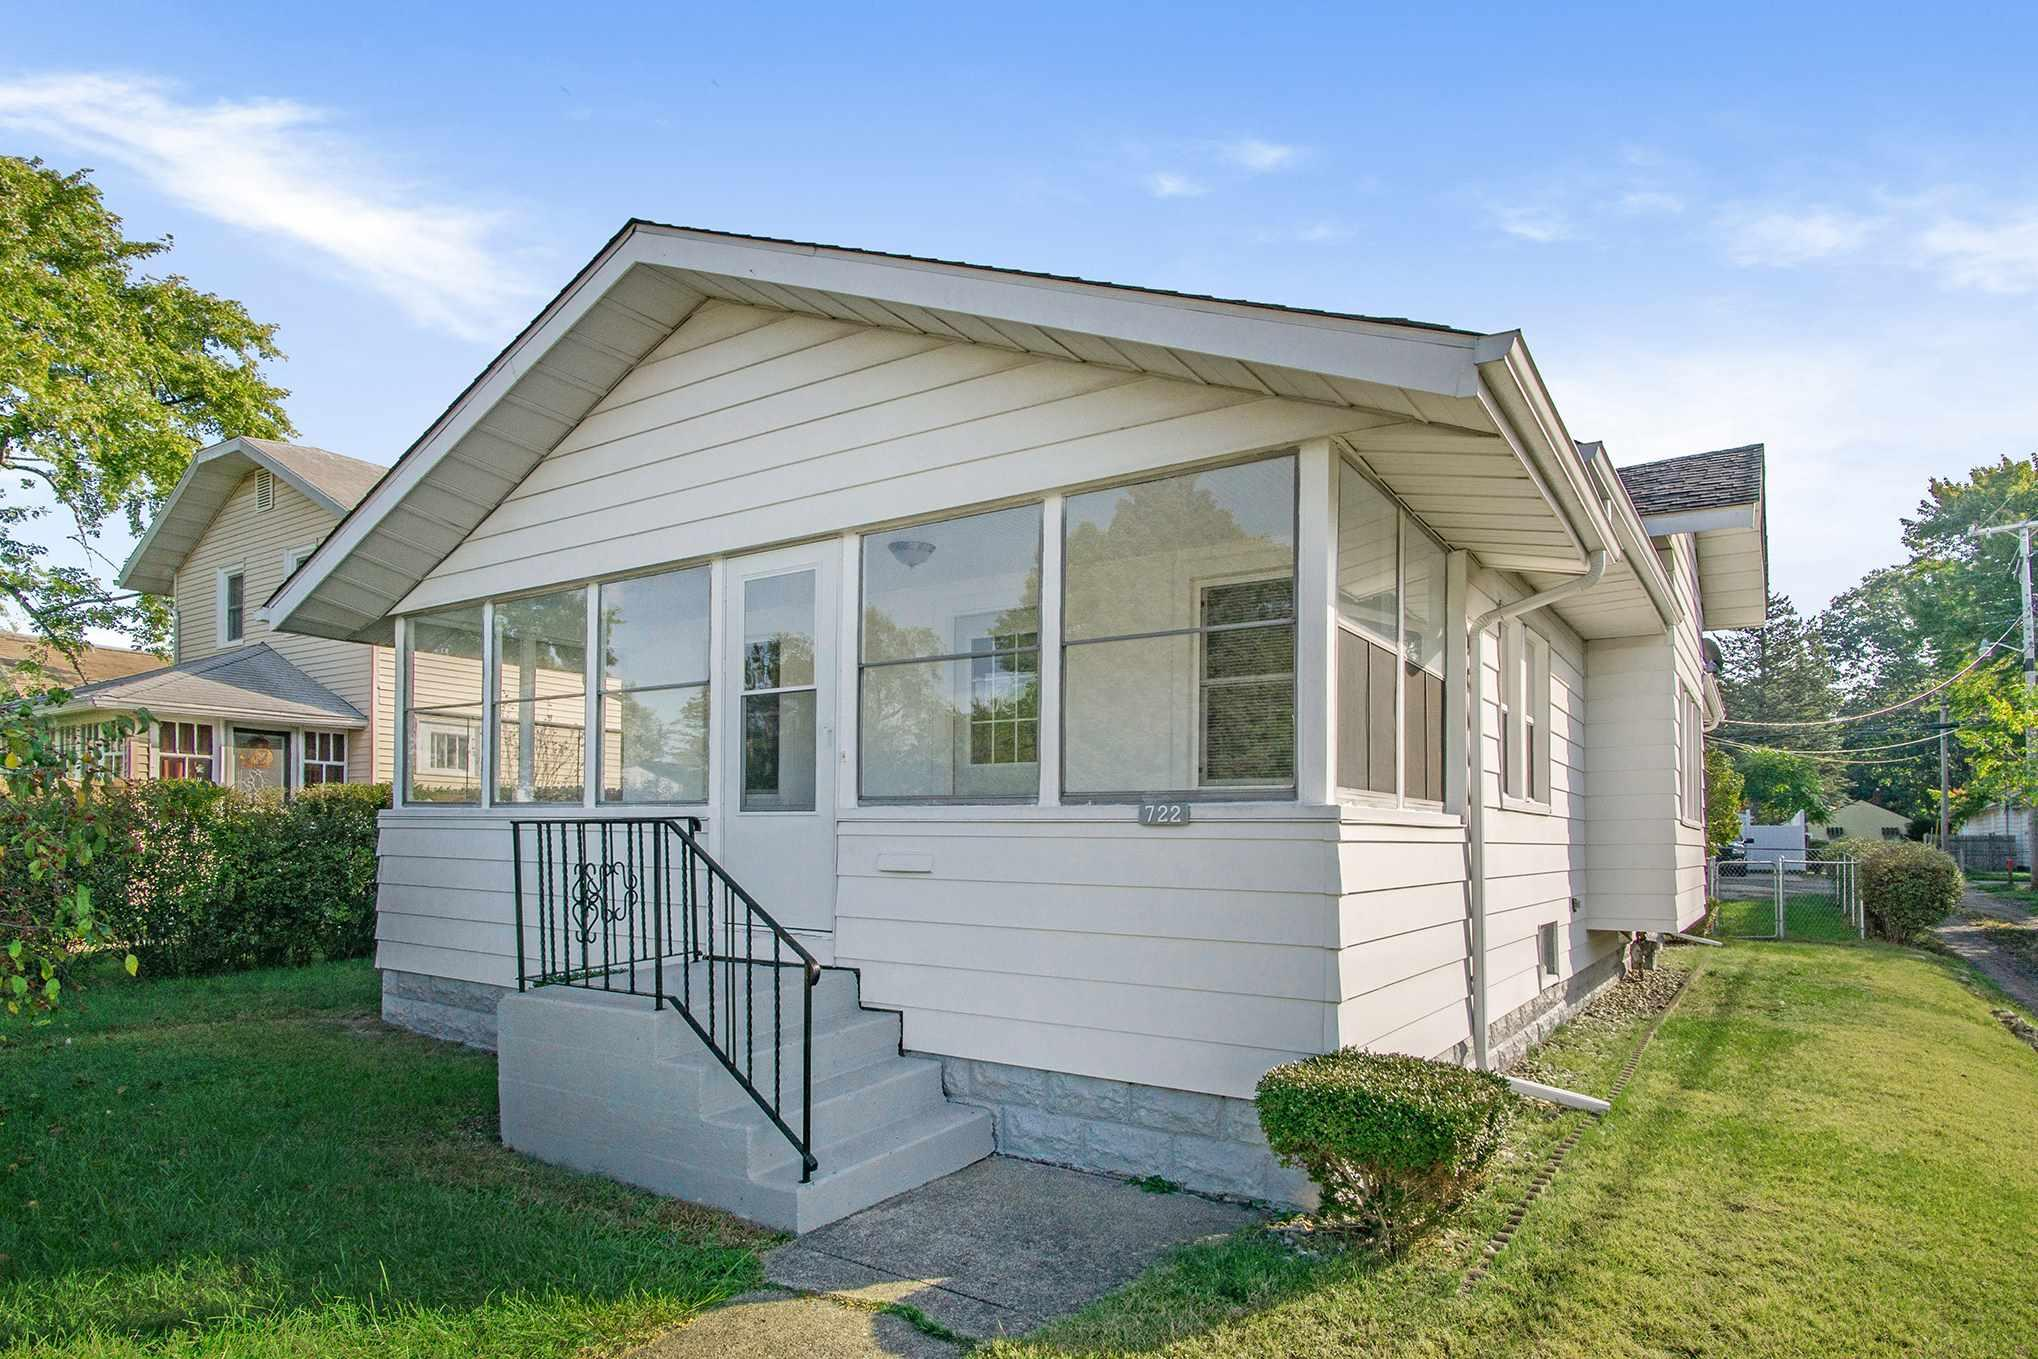 722 S 36TH South Bend, IN 46615